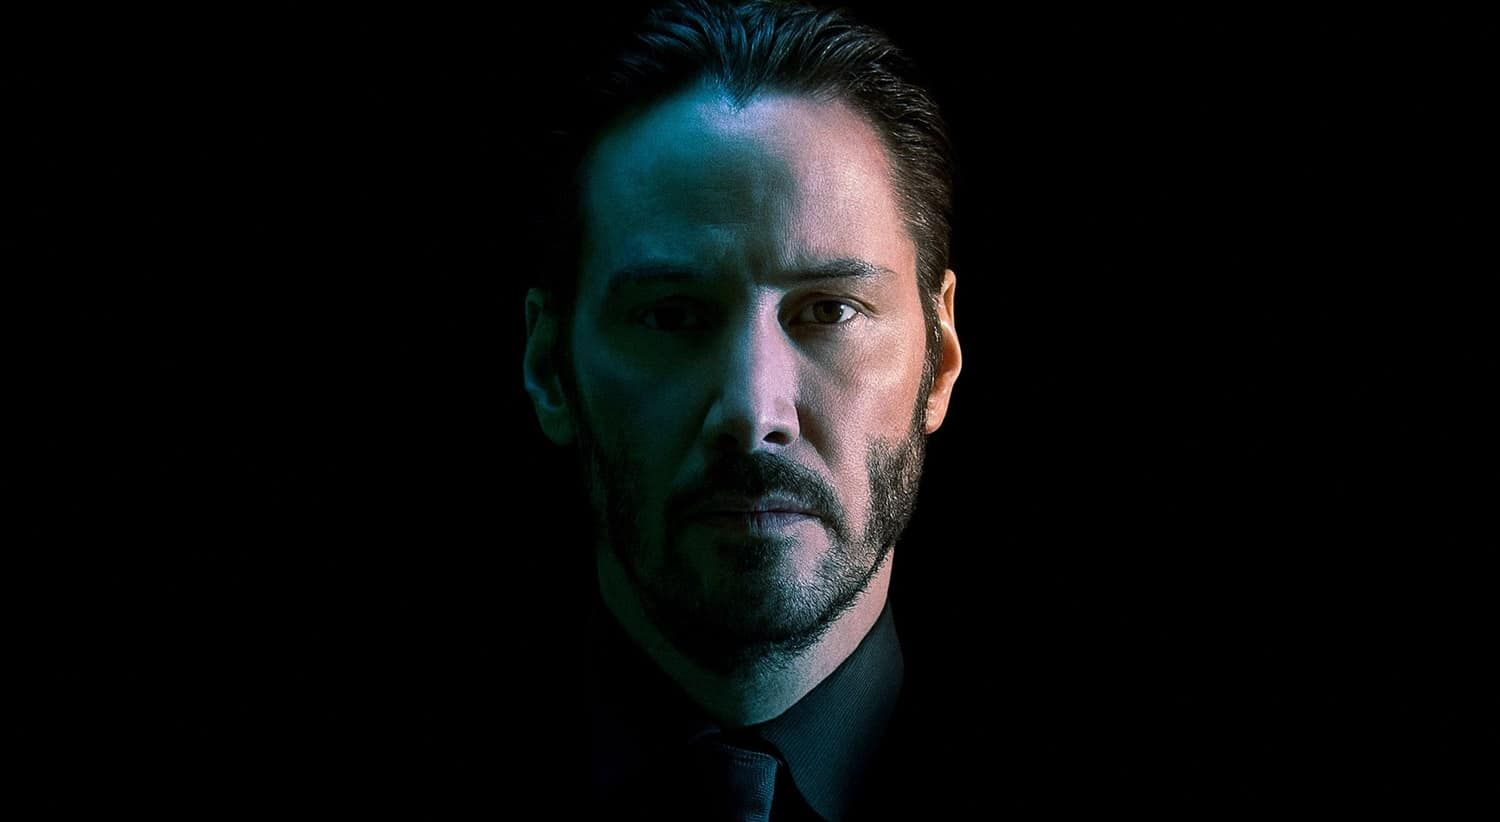 What Makes 'John Wick' a Cult Classic?